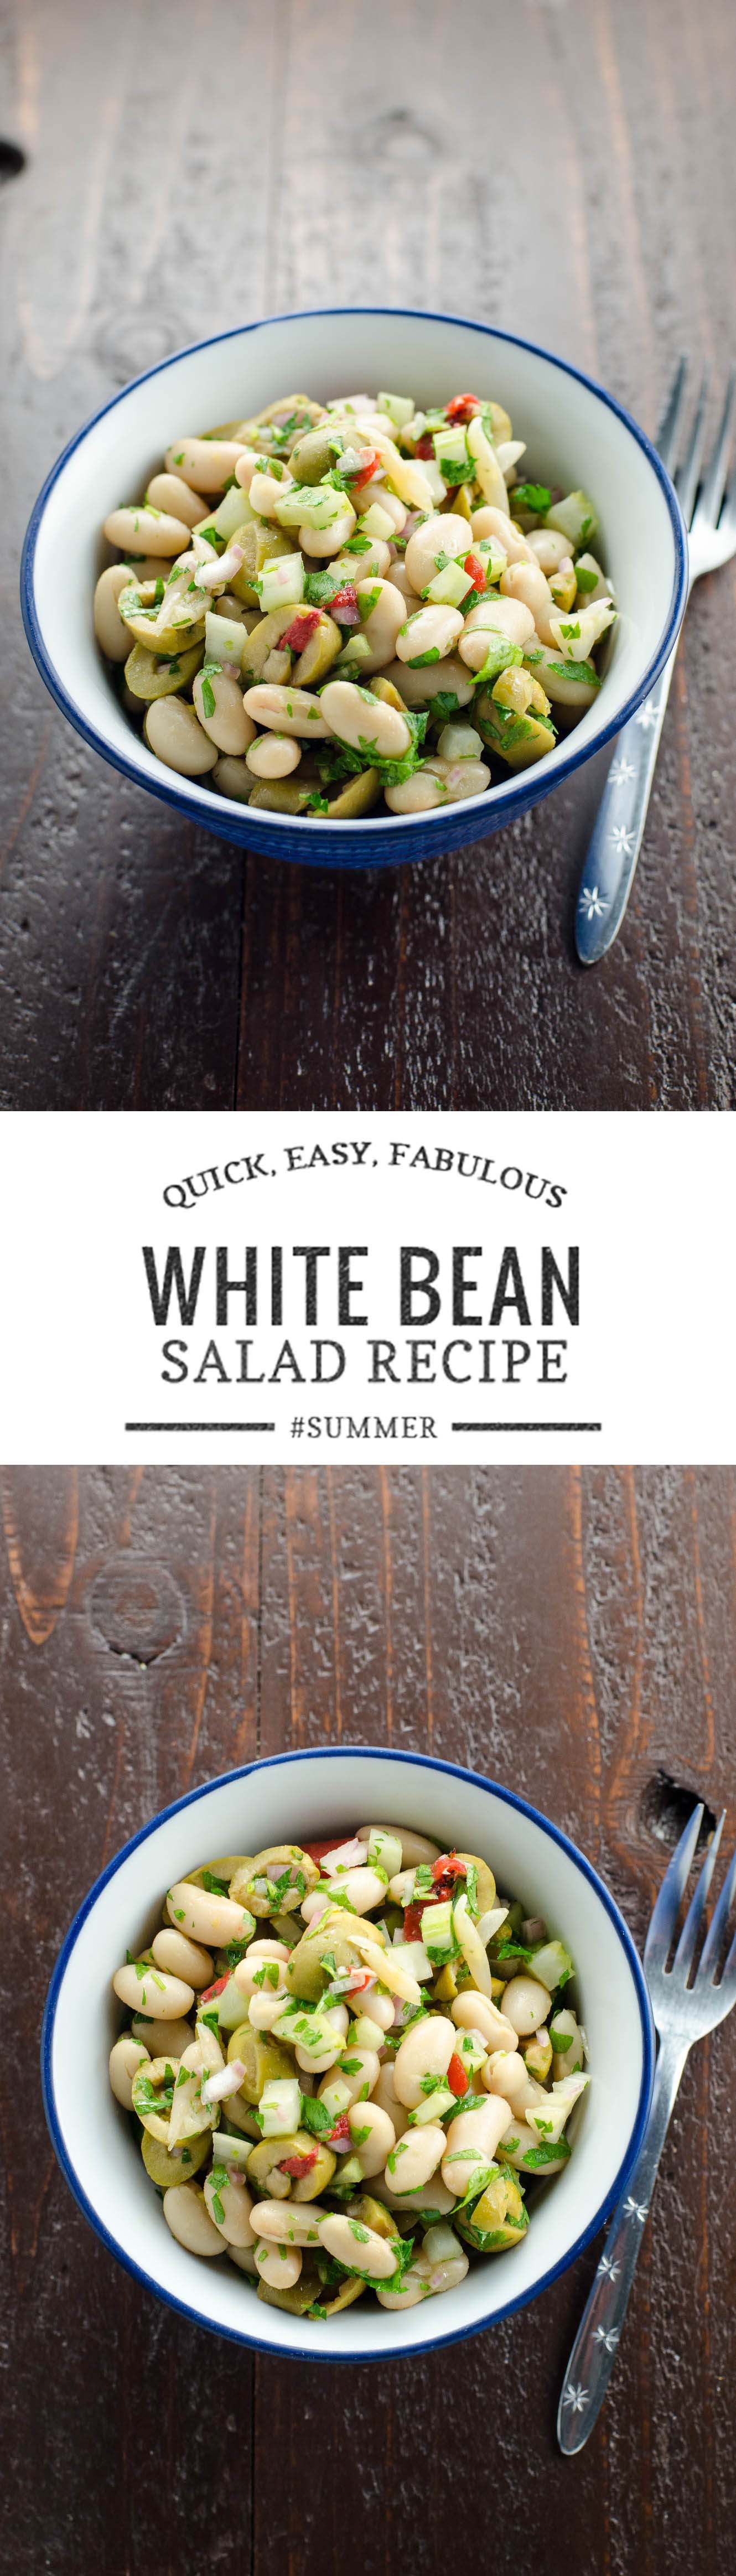 An easy, no-cook white bean salad that's ready to please crowds for lunches, parties and picnics in about 15 minutes.